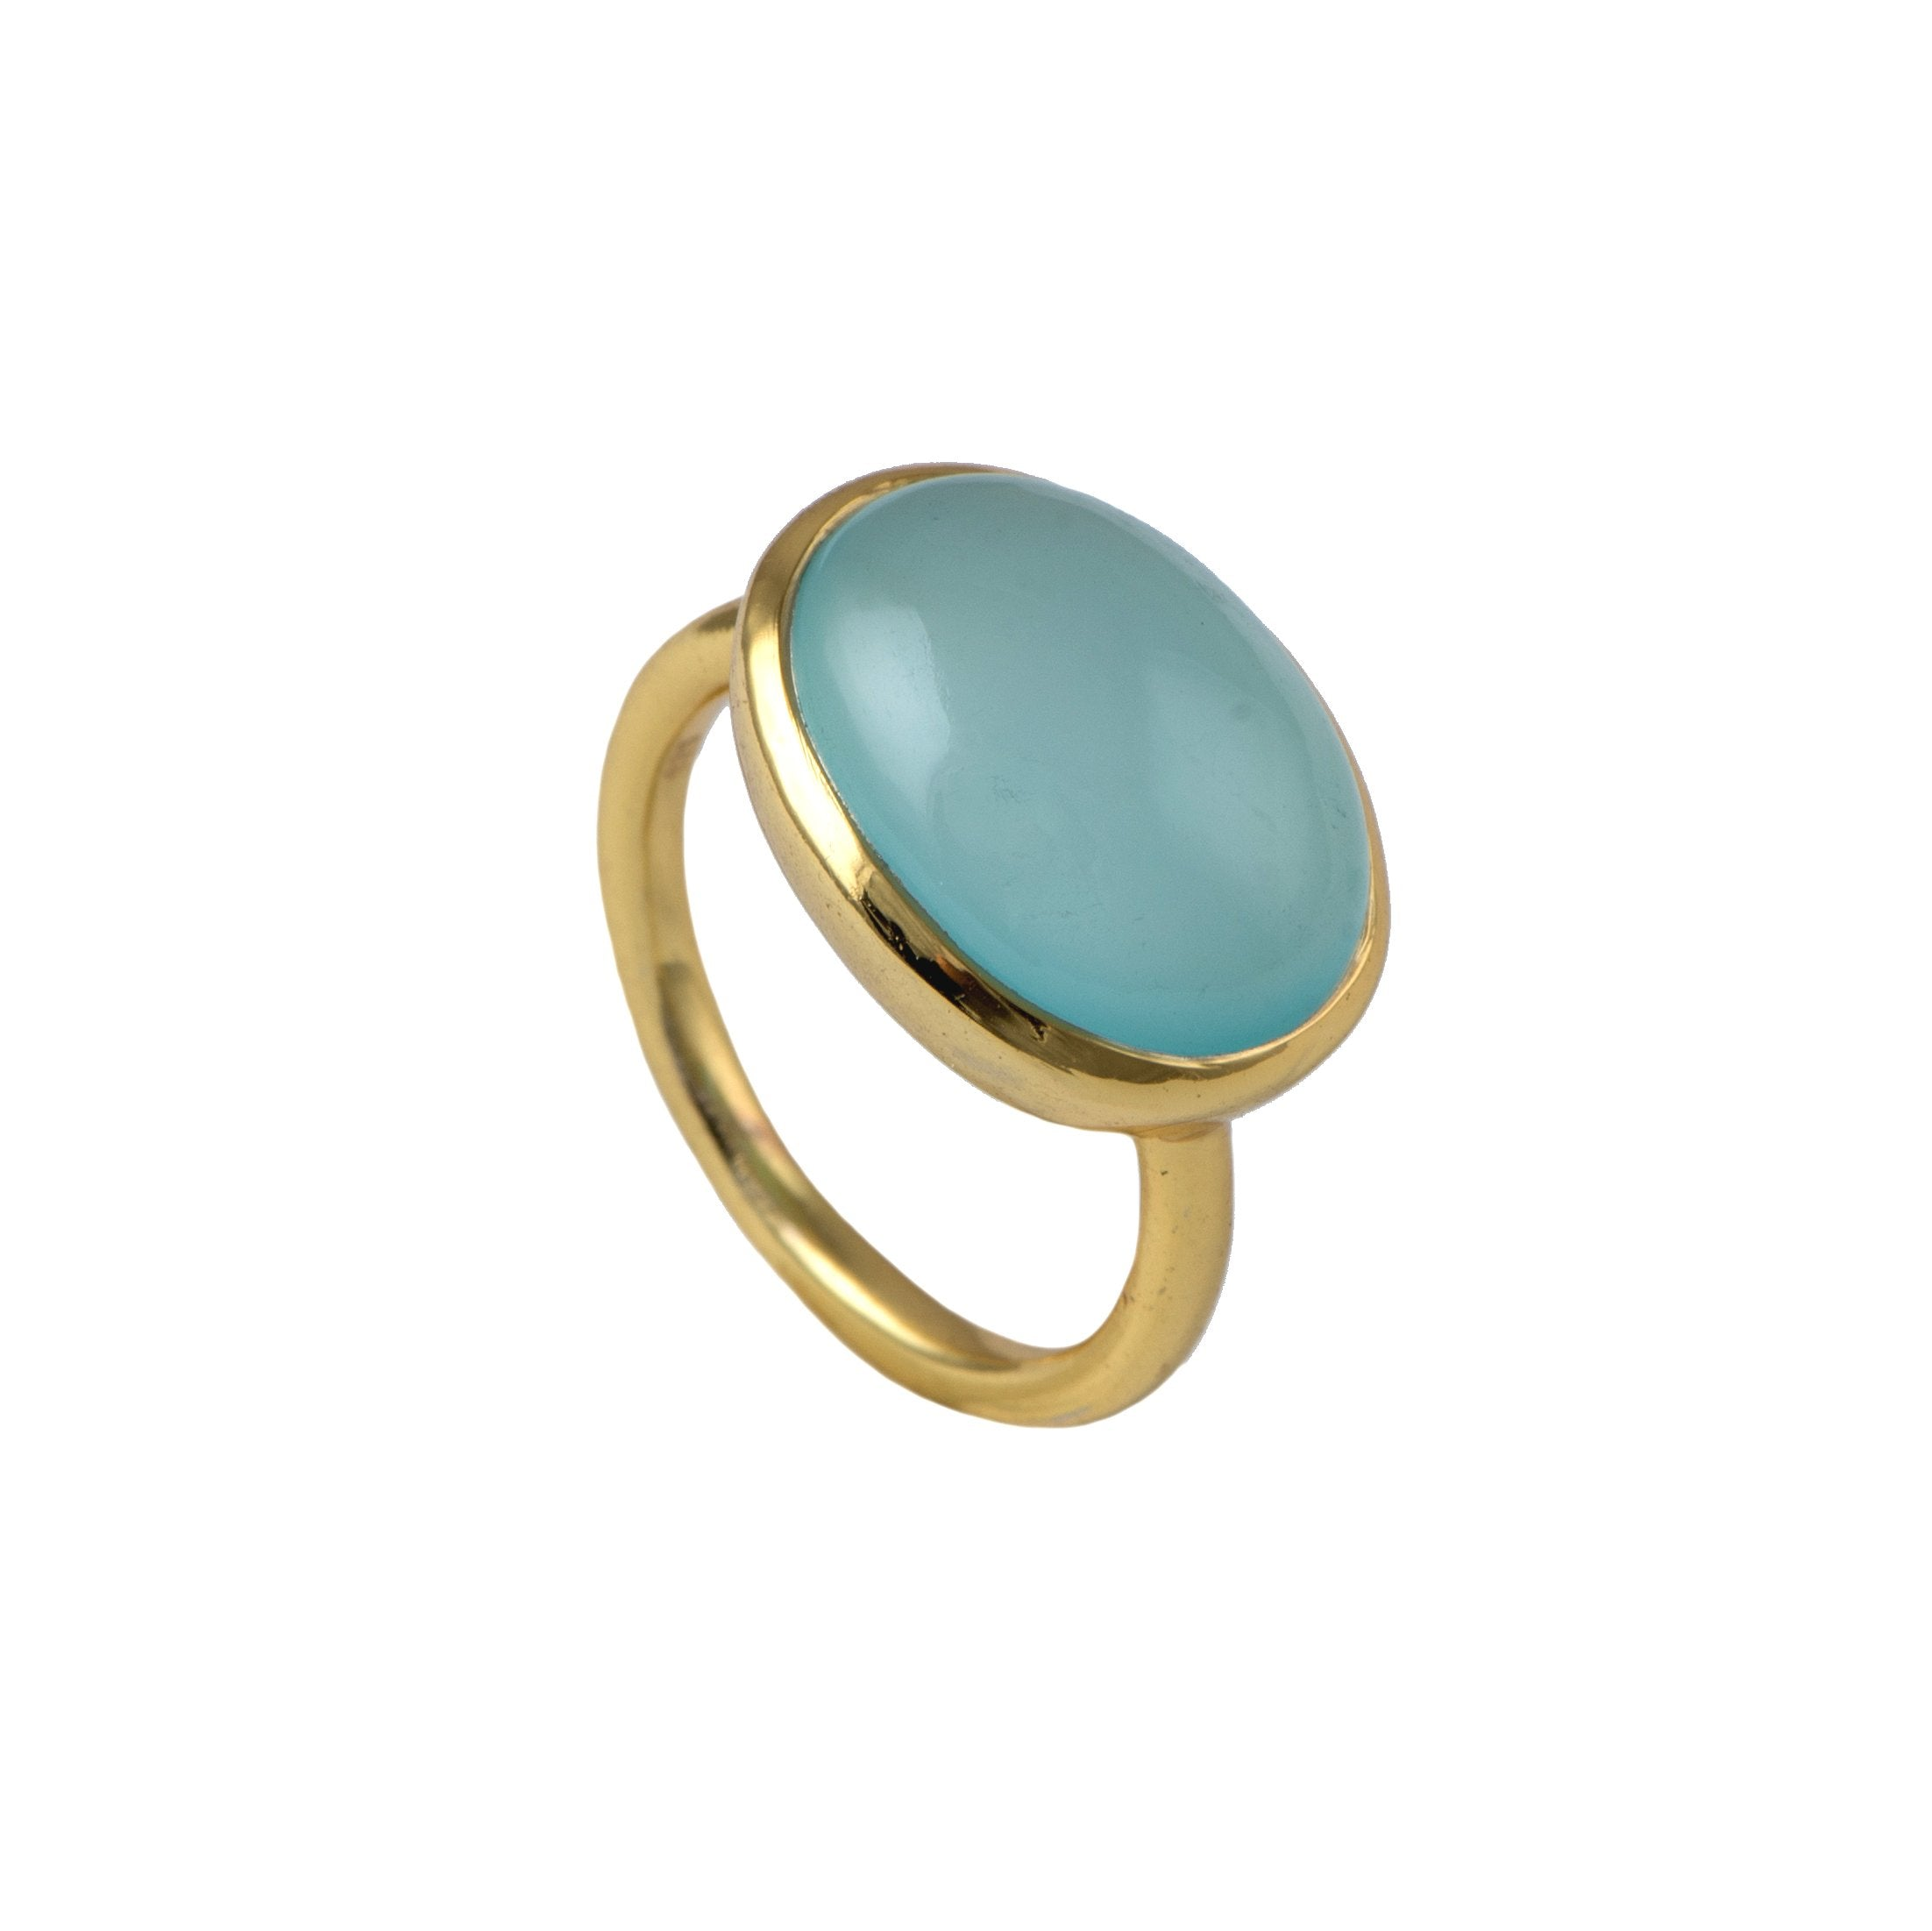 Cabochon Oval Cut Natural Gemstone Gold Plated Sterling Silver Ring - Aqua Chalcedony